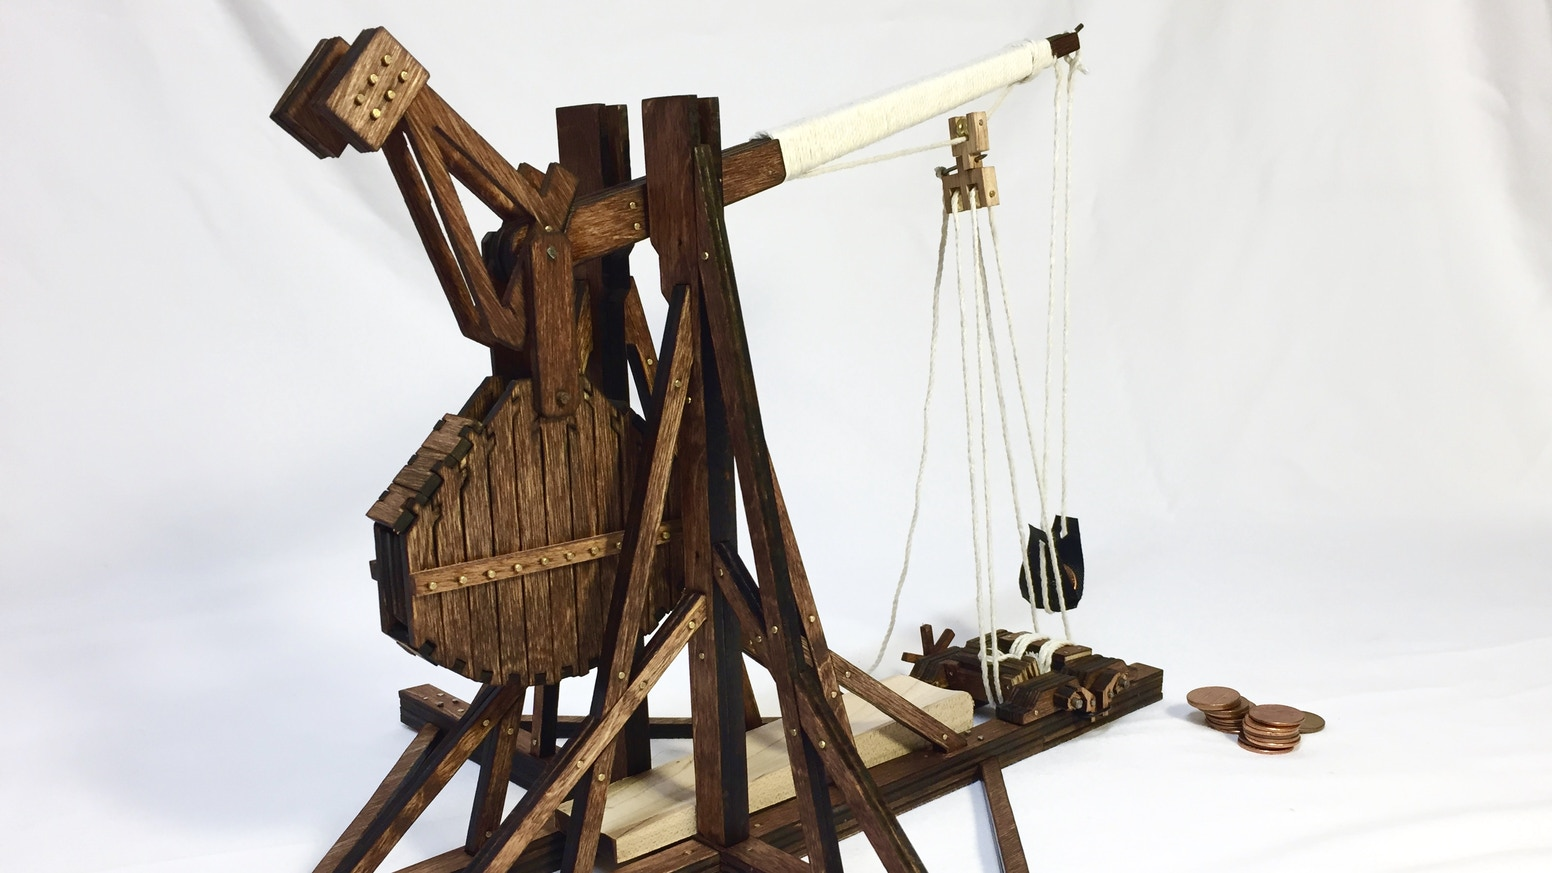 Snap Together A Highly Detailed Functional And Affordable Trebuchet Kit